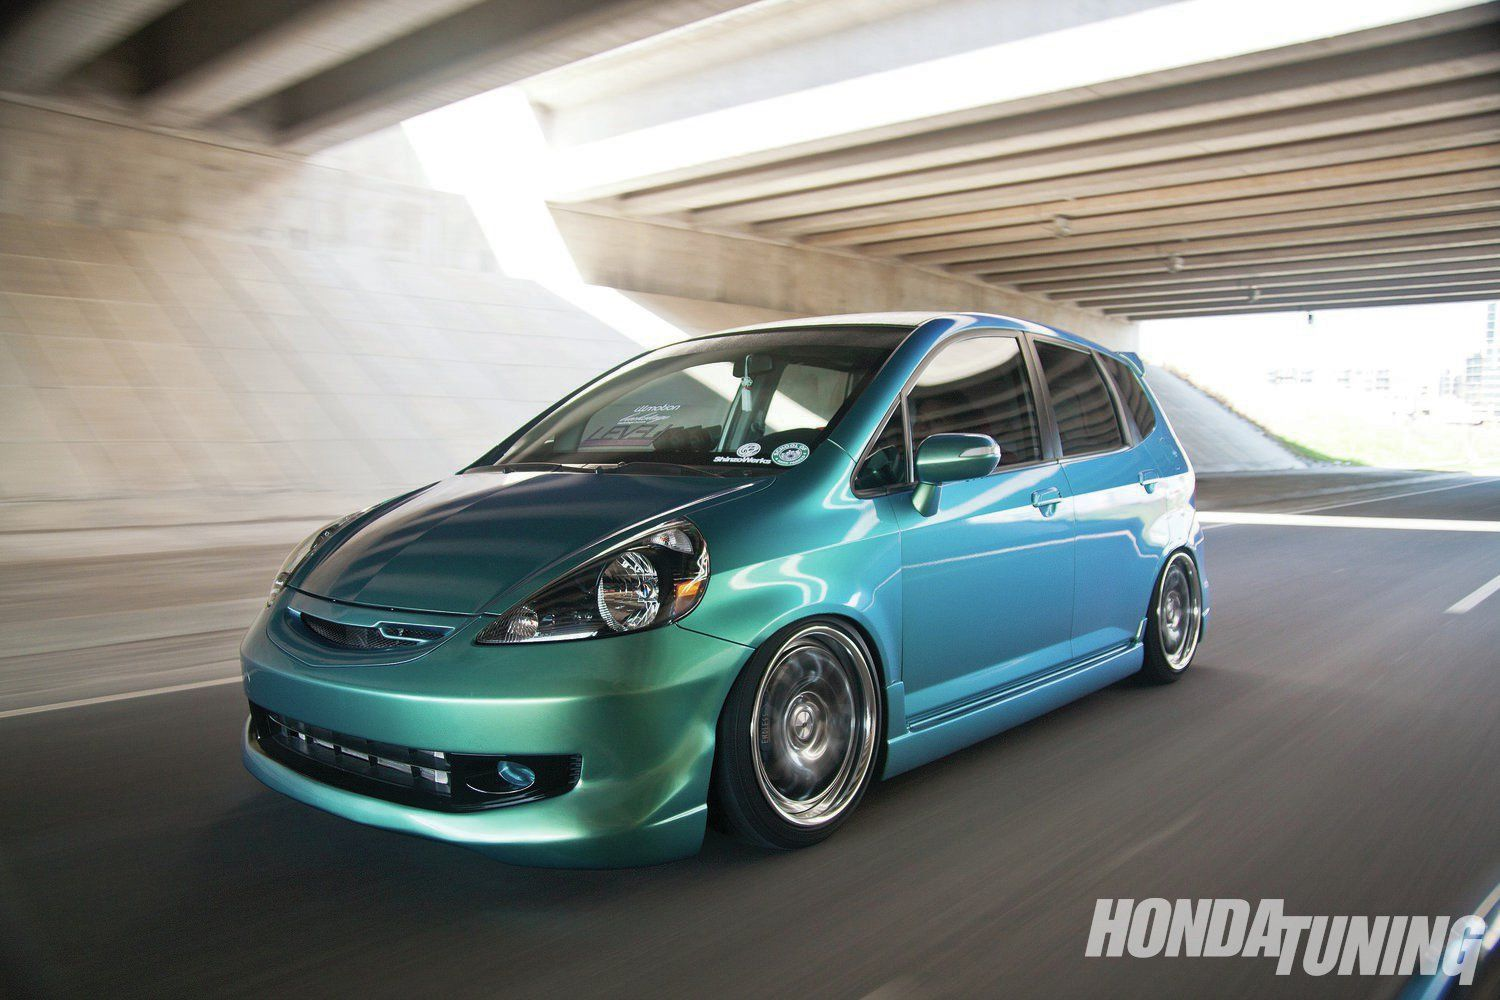 Honda tuning Autos